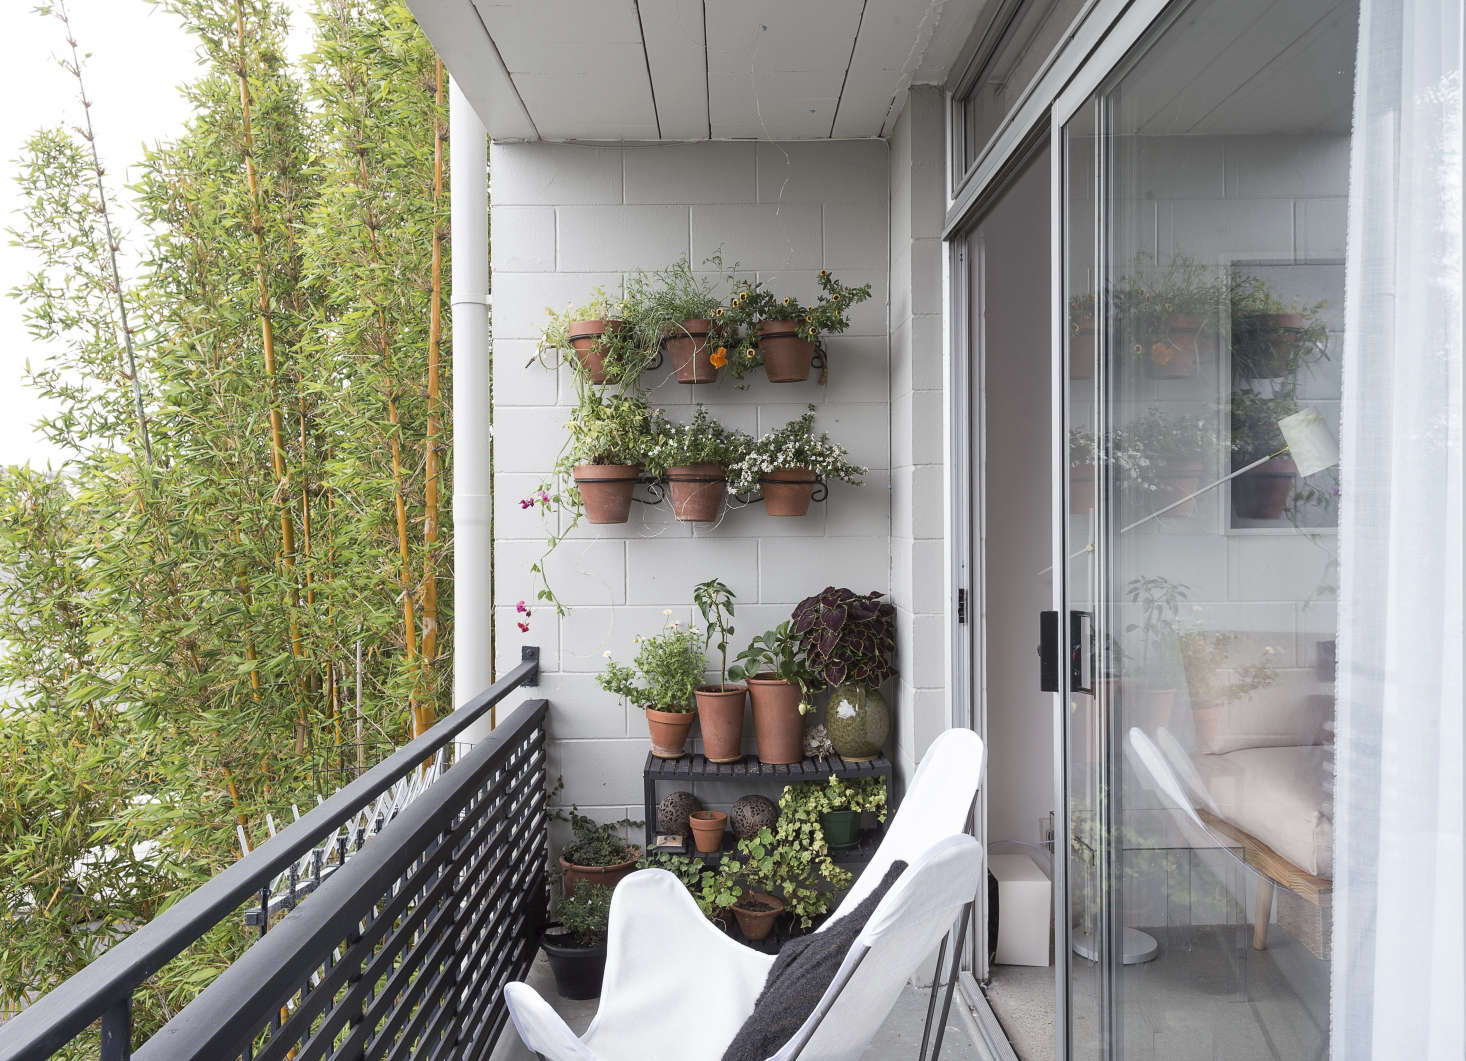 Steal This Look: Balcony Garden on a Budget - Gardenista